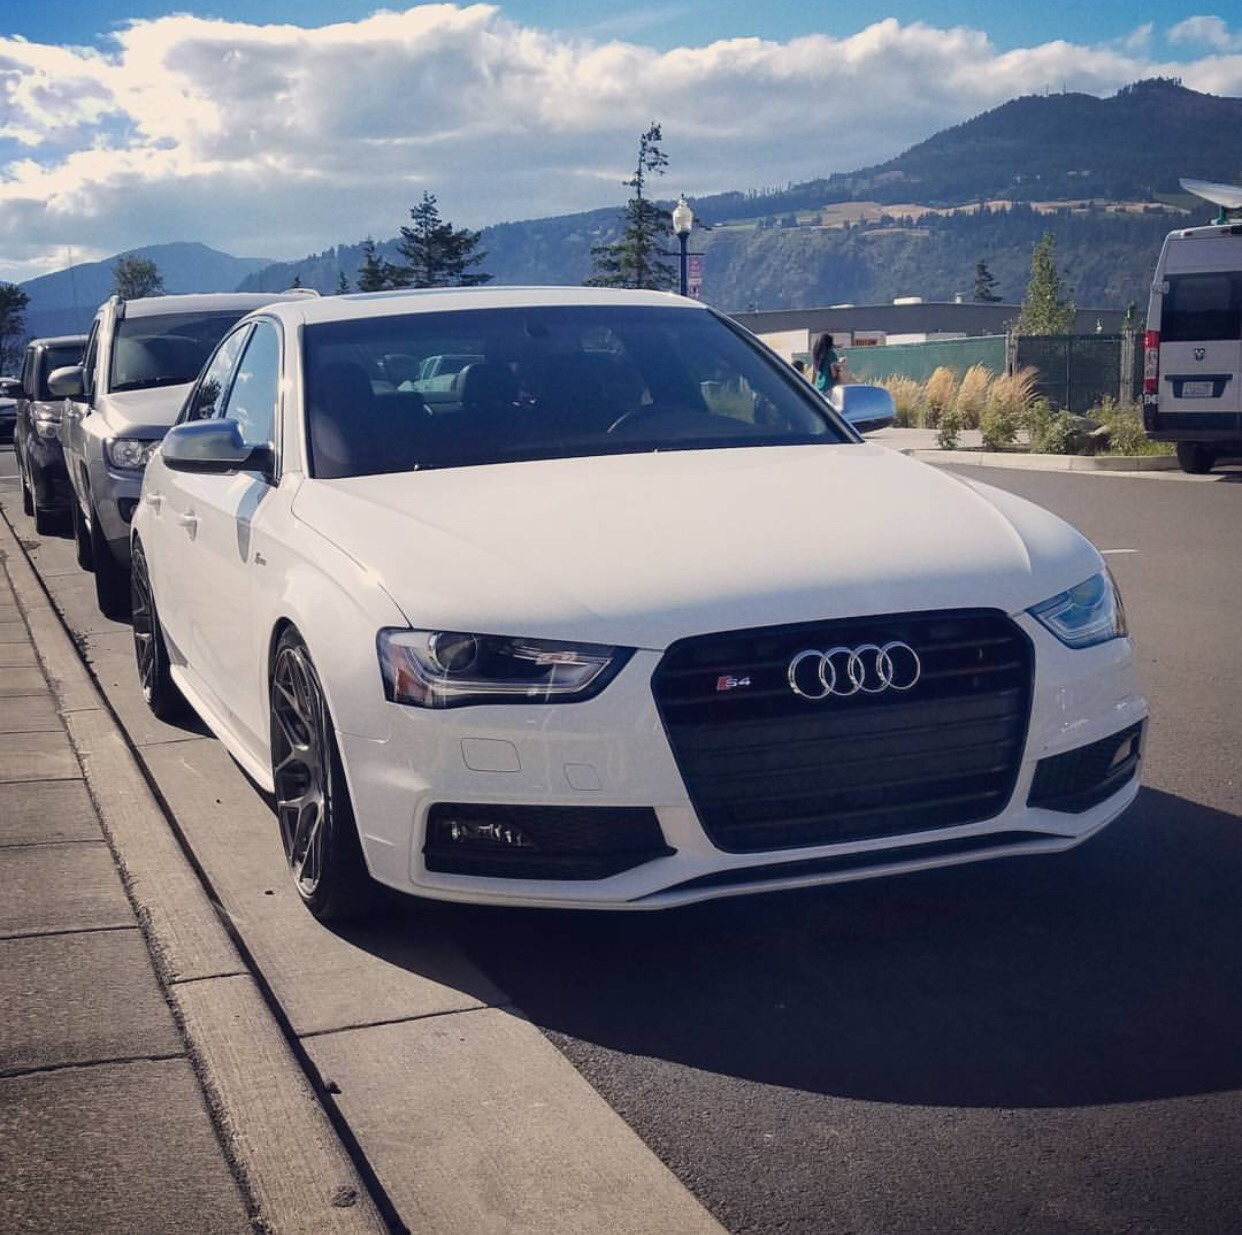 Used Audi Avant For Sale: For Sale: 2013 Audi S4, Ibis White, Nappa Leather, Avant